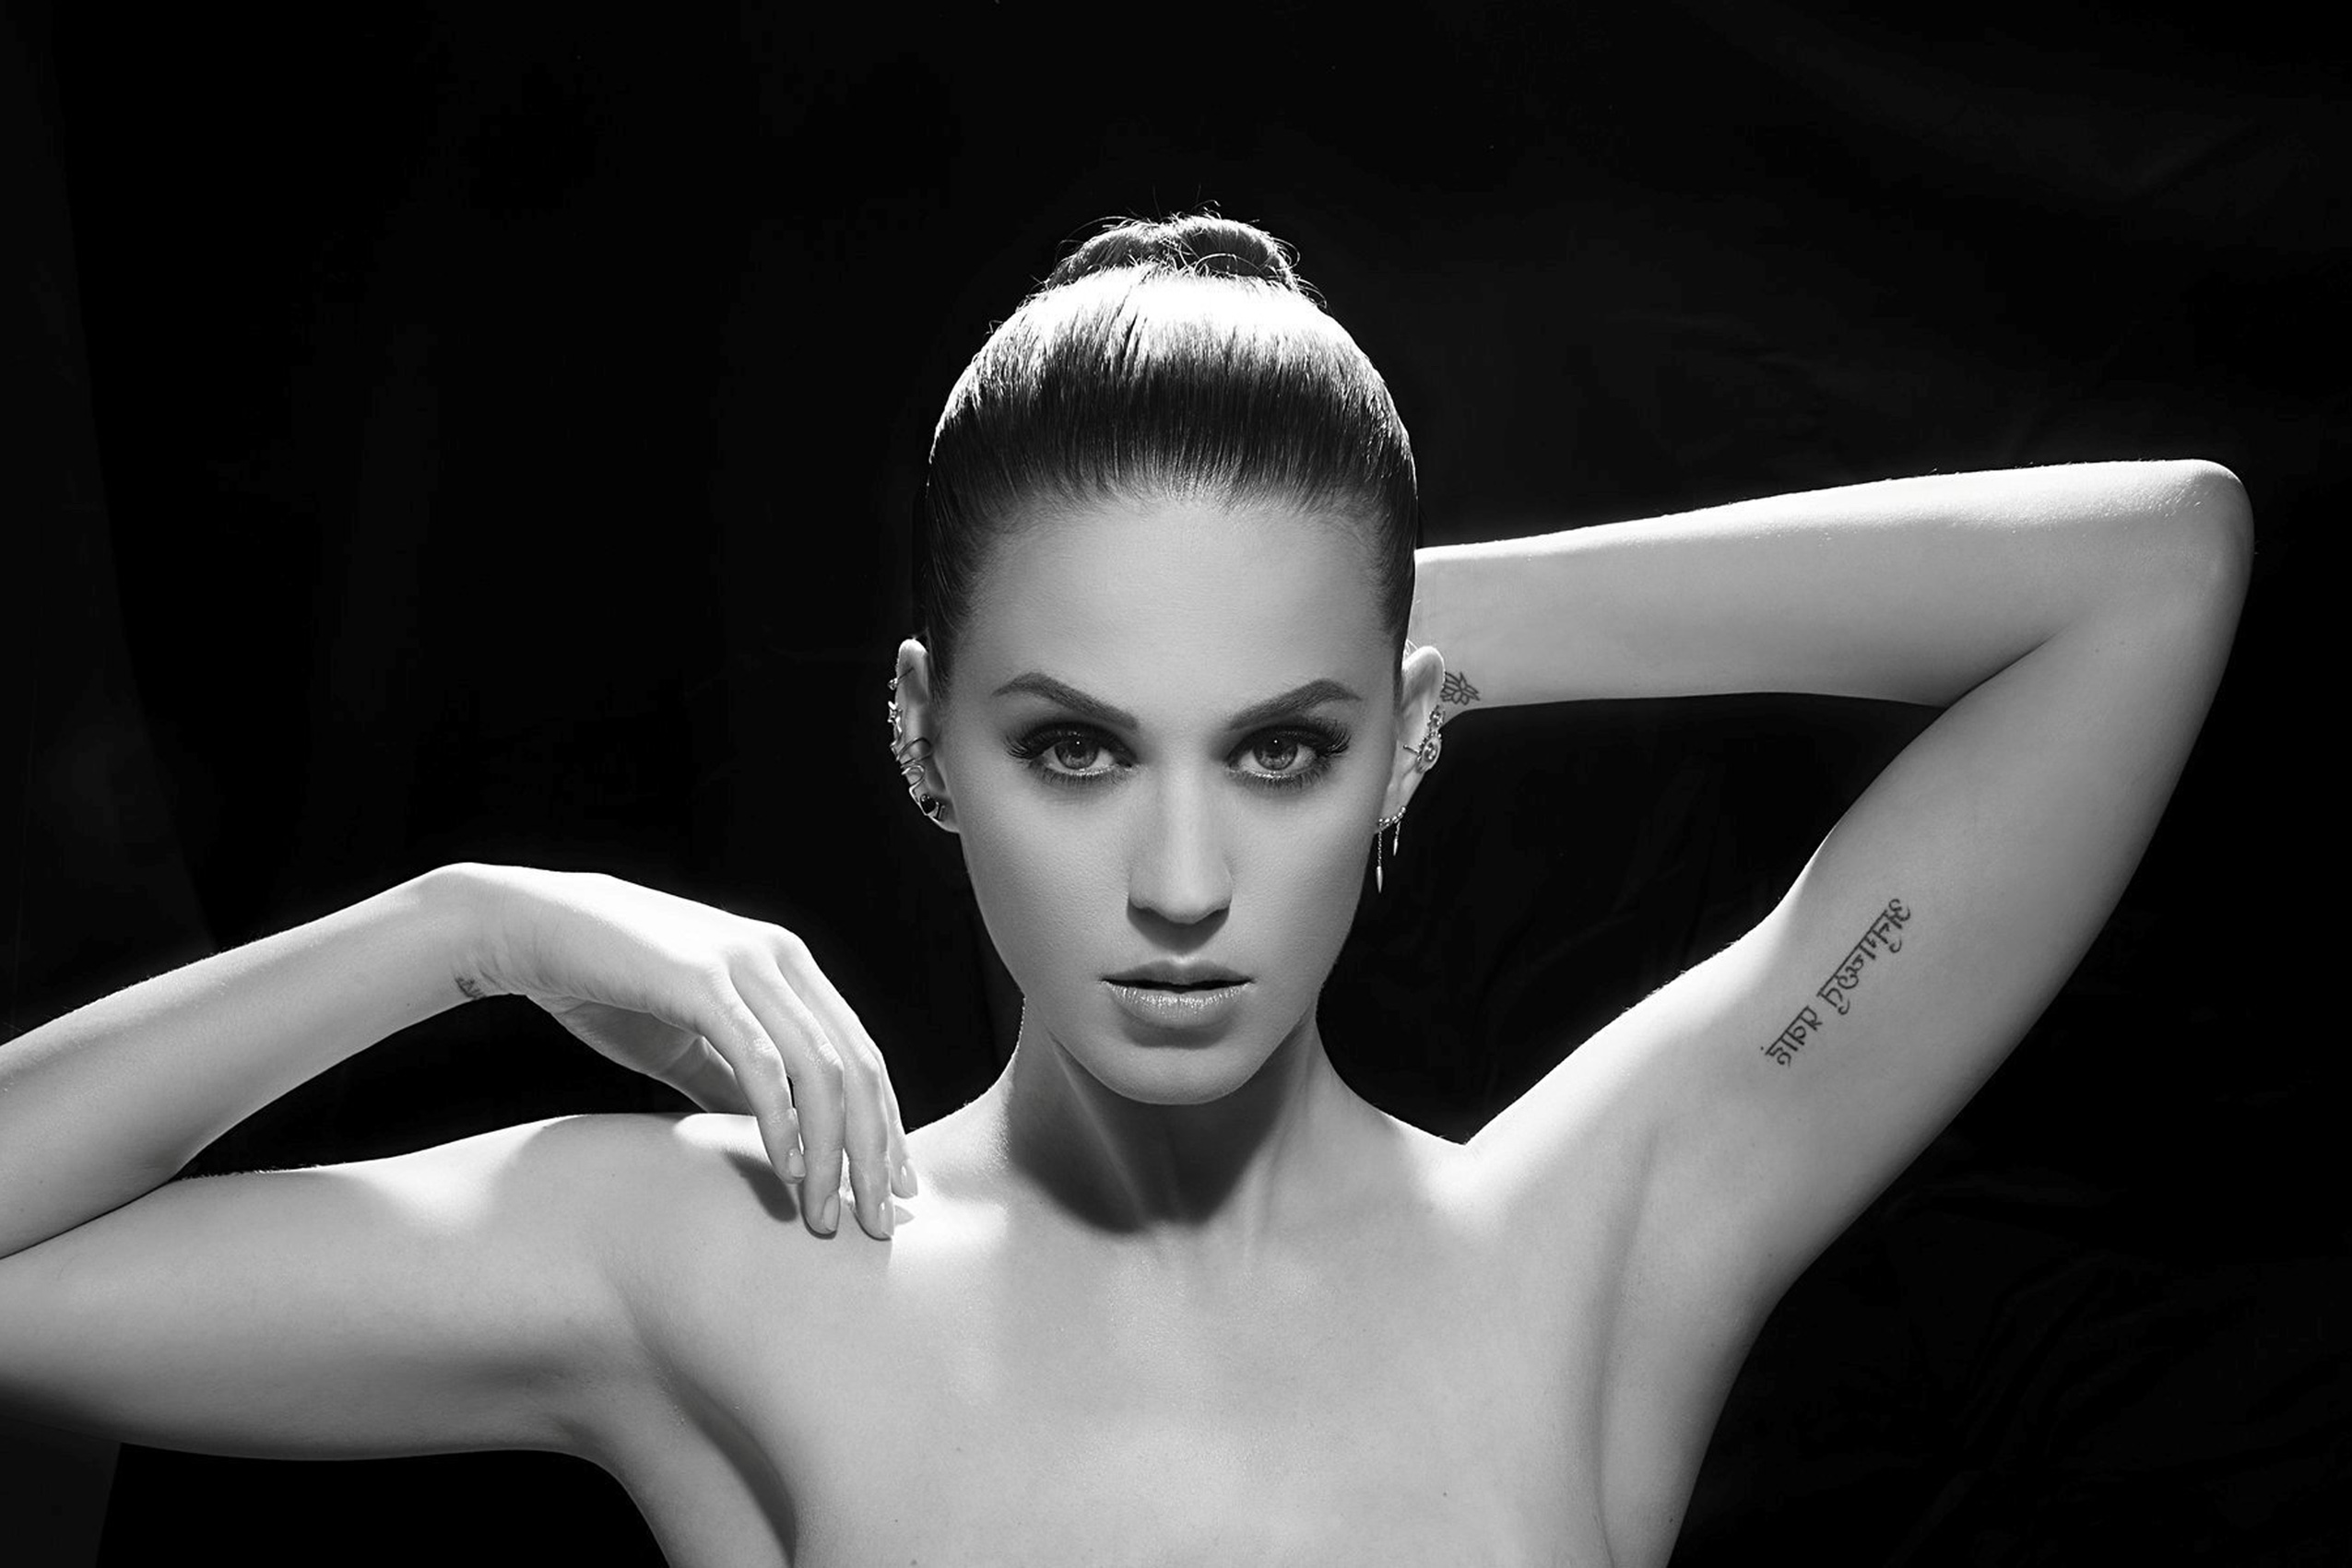 Katy Perry Black And White Portrait Tattoos Kc863 Living Room Home